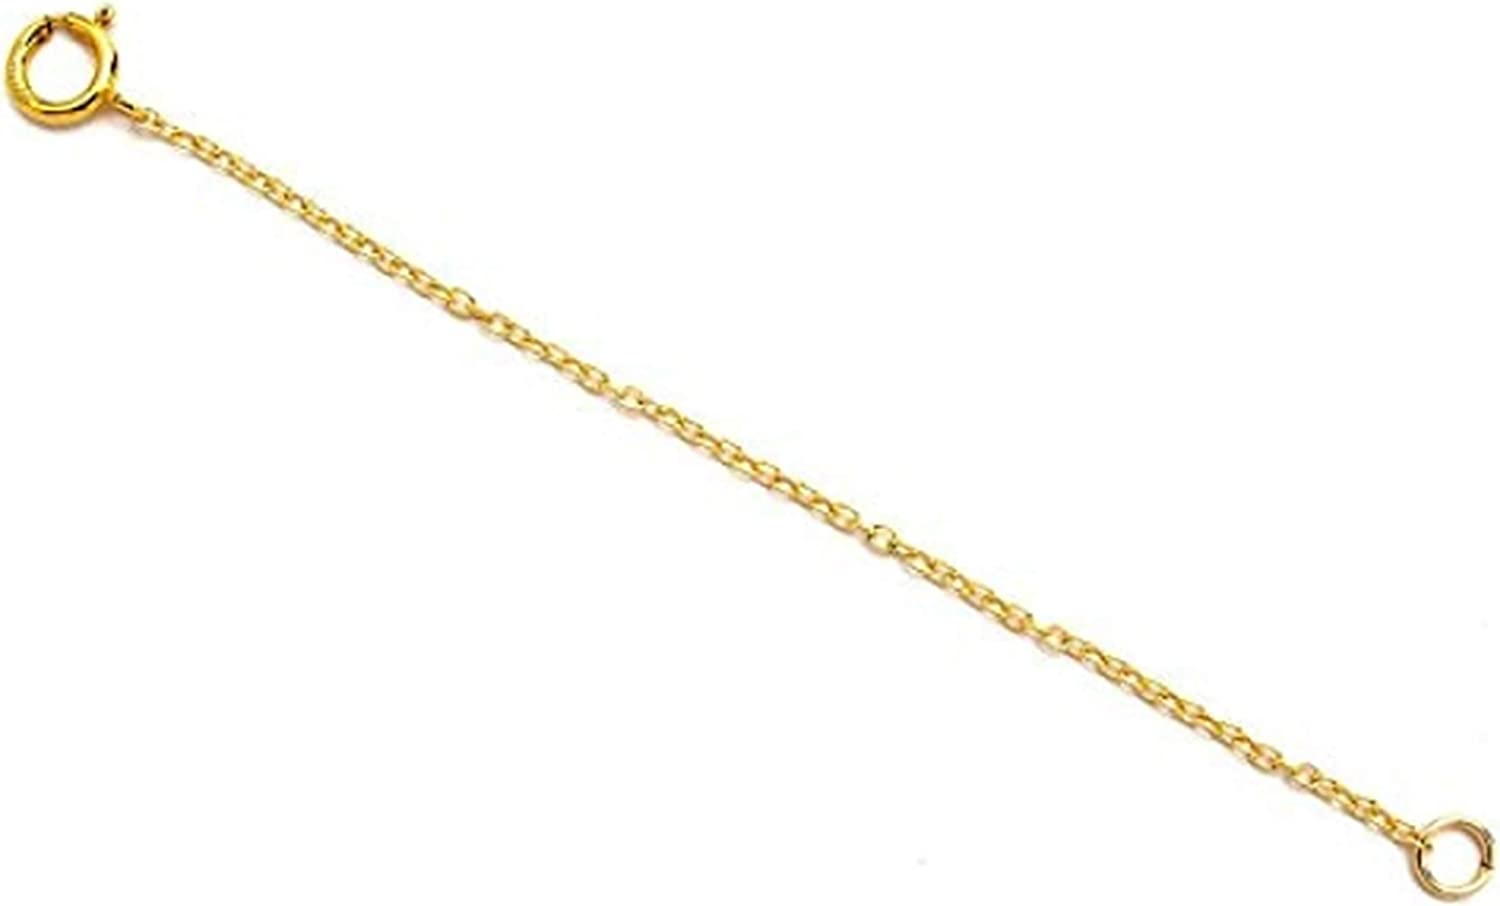 """14K Necklace Extender Chain, 2.25"""" Removable and Adjustable - Extra Links to Extend Your Necklace- 14K Yellow Safety Chain 2.25 in Necklace Extender- Collar Extensor Cadena"""